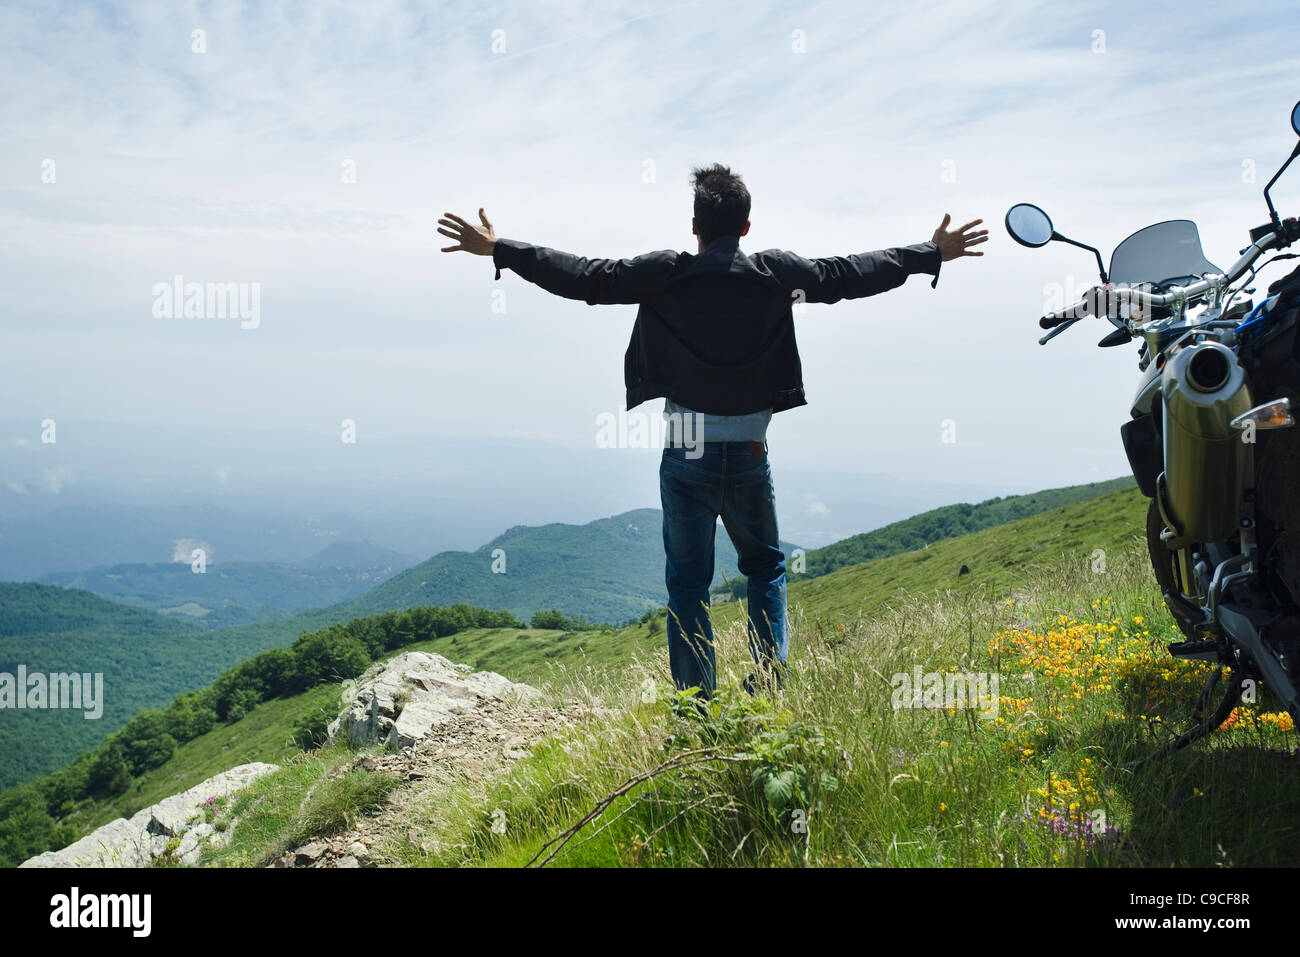 Man standing by motorcycle on top of mountain, arms outstretched - Stock Image